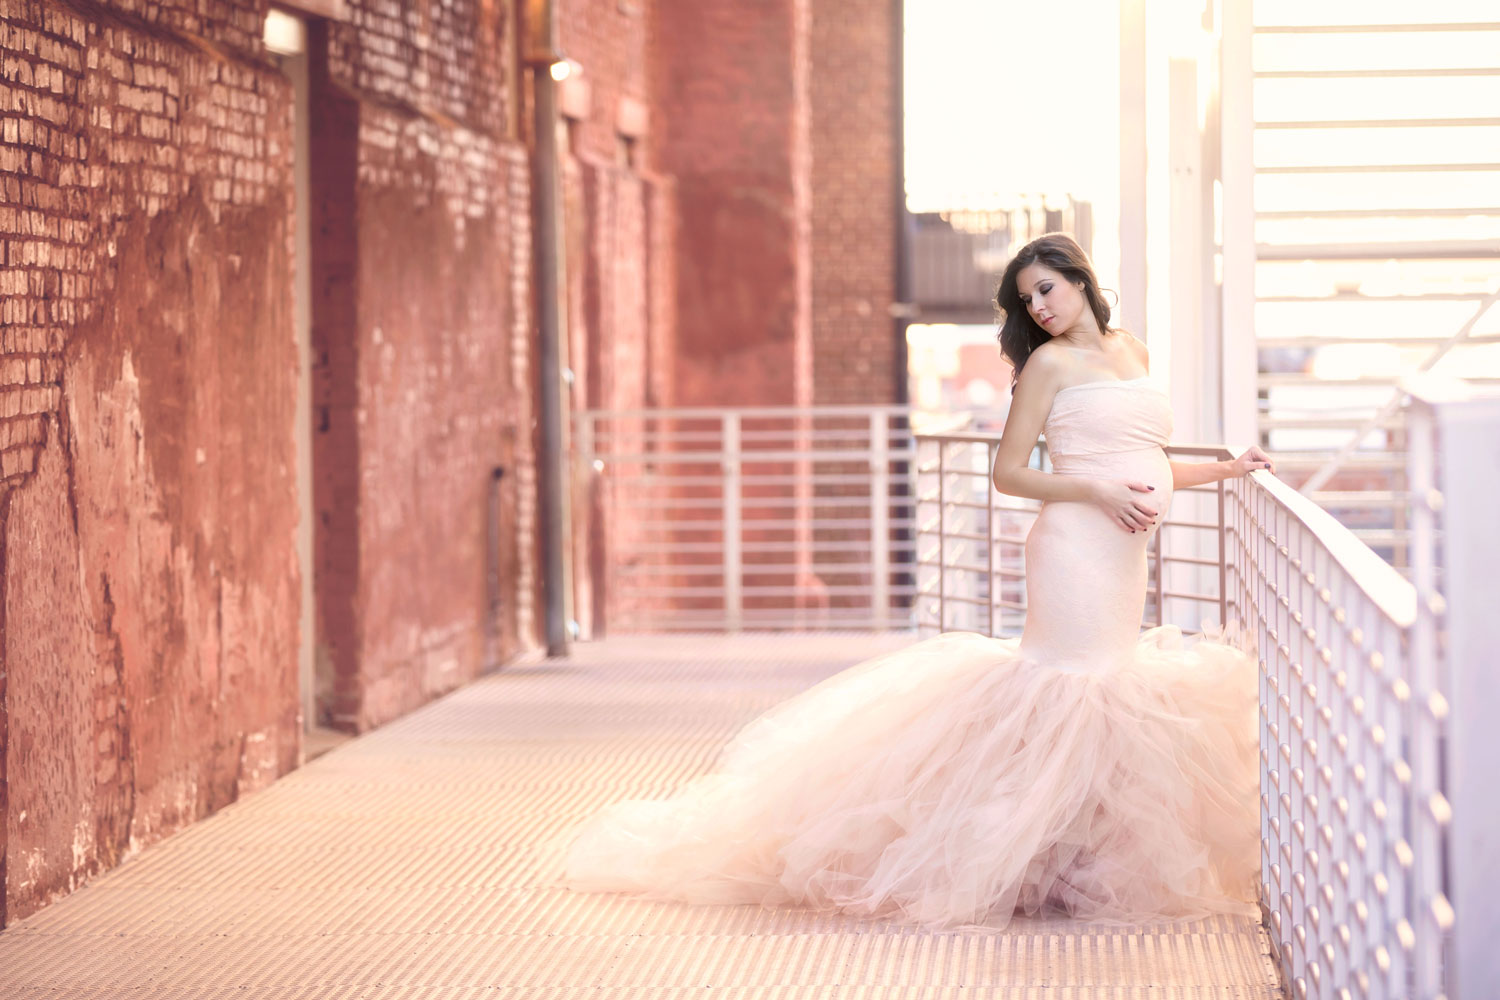 knoxville-photographer-urban-downtown-maternity-gown.jpg